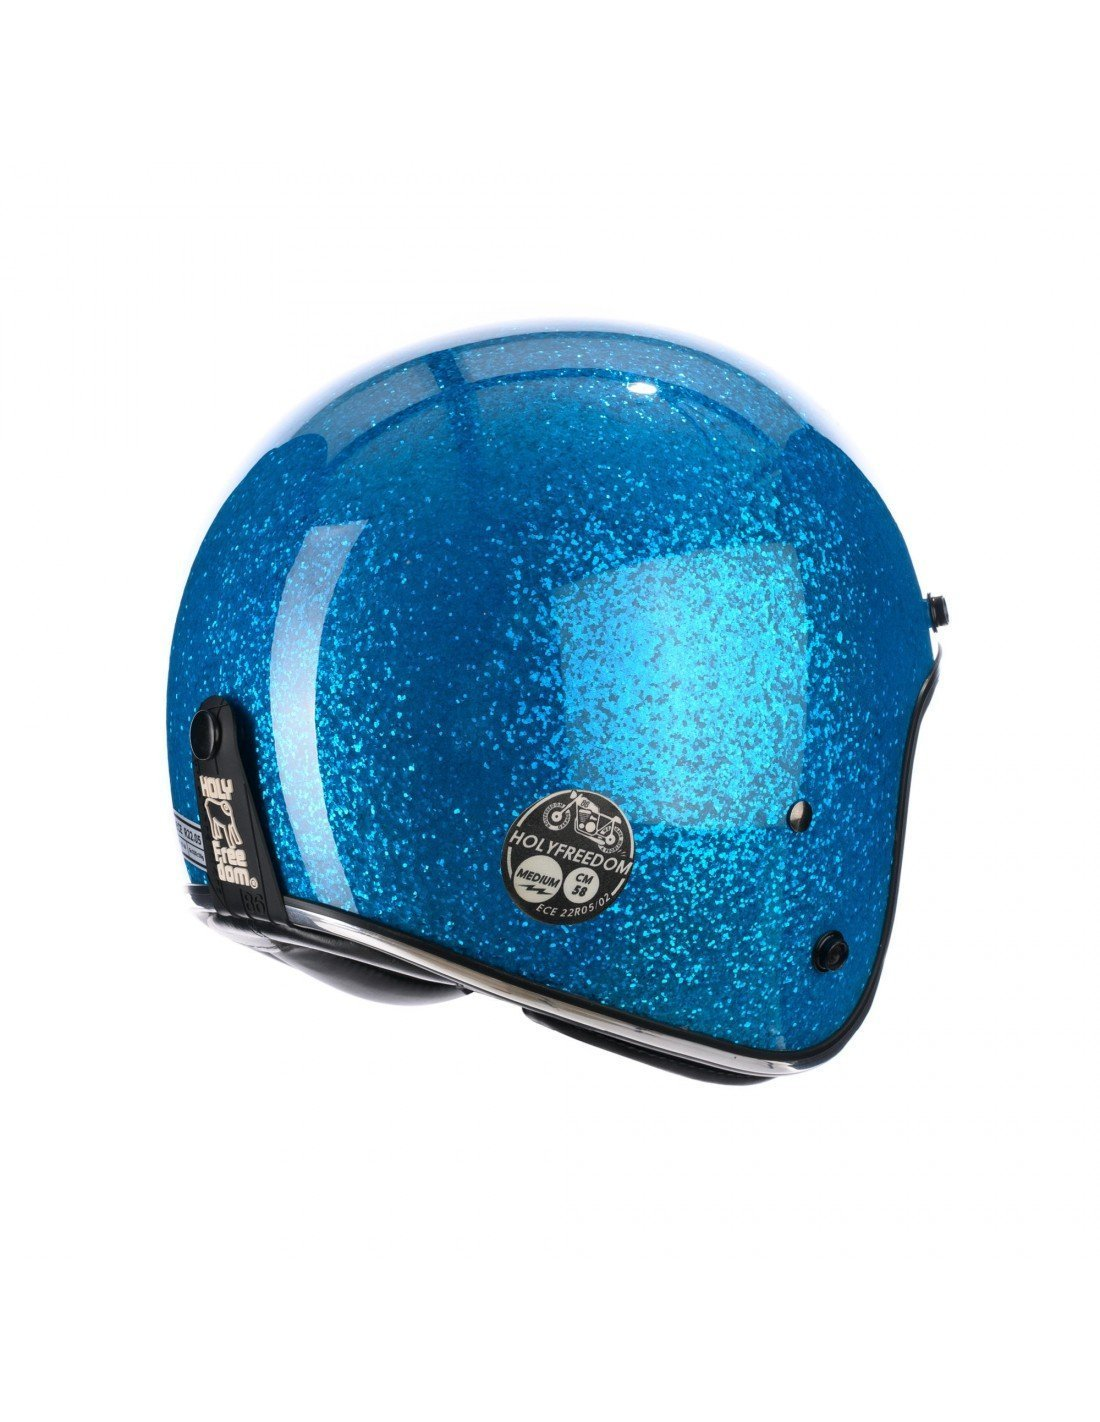 Holy Freedom - Holy Freedom Blue Glitter Open Face Jet Helmet ECE Certified - Helmets - Salt Flats Clothing